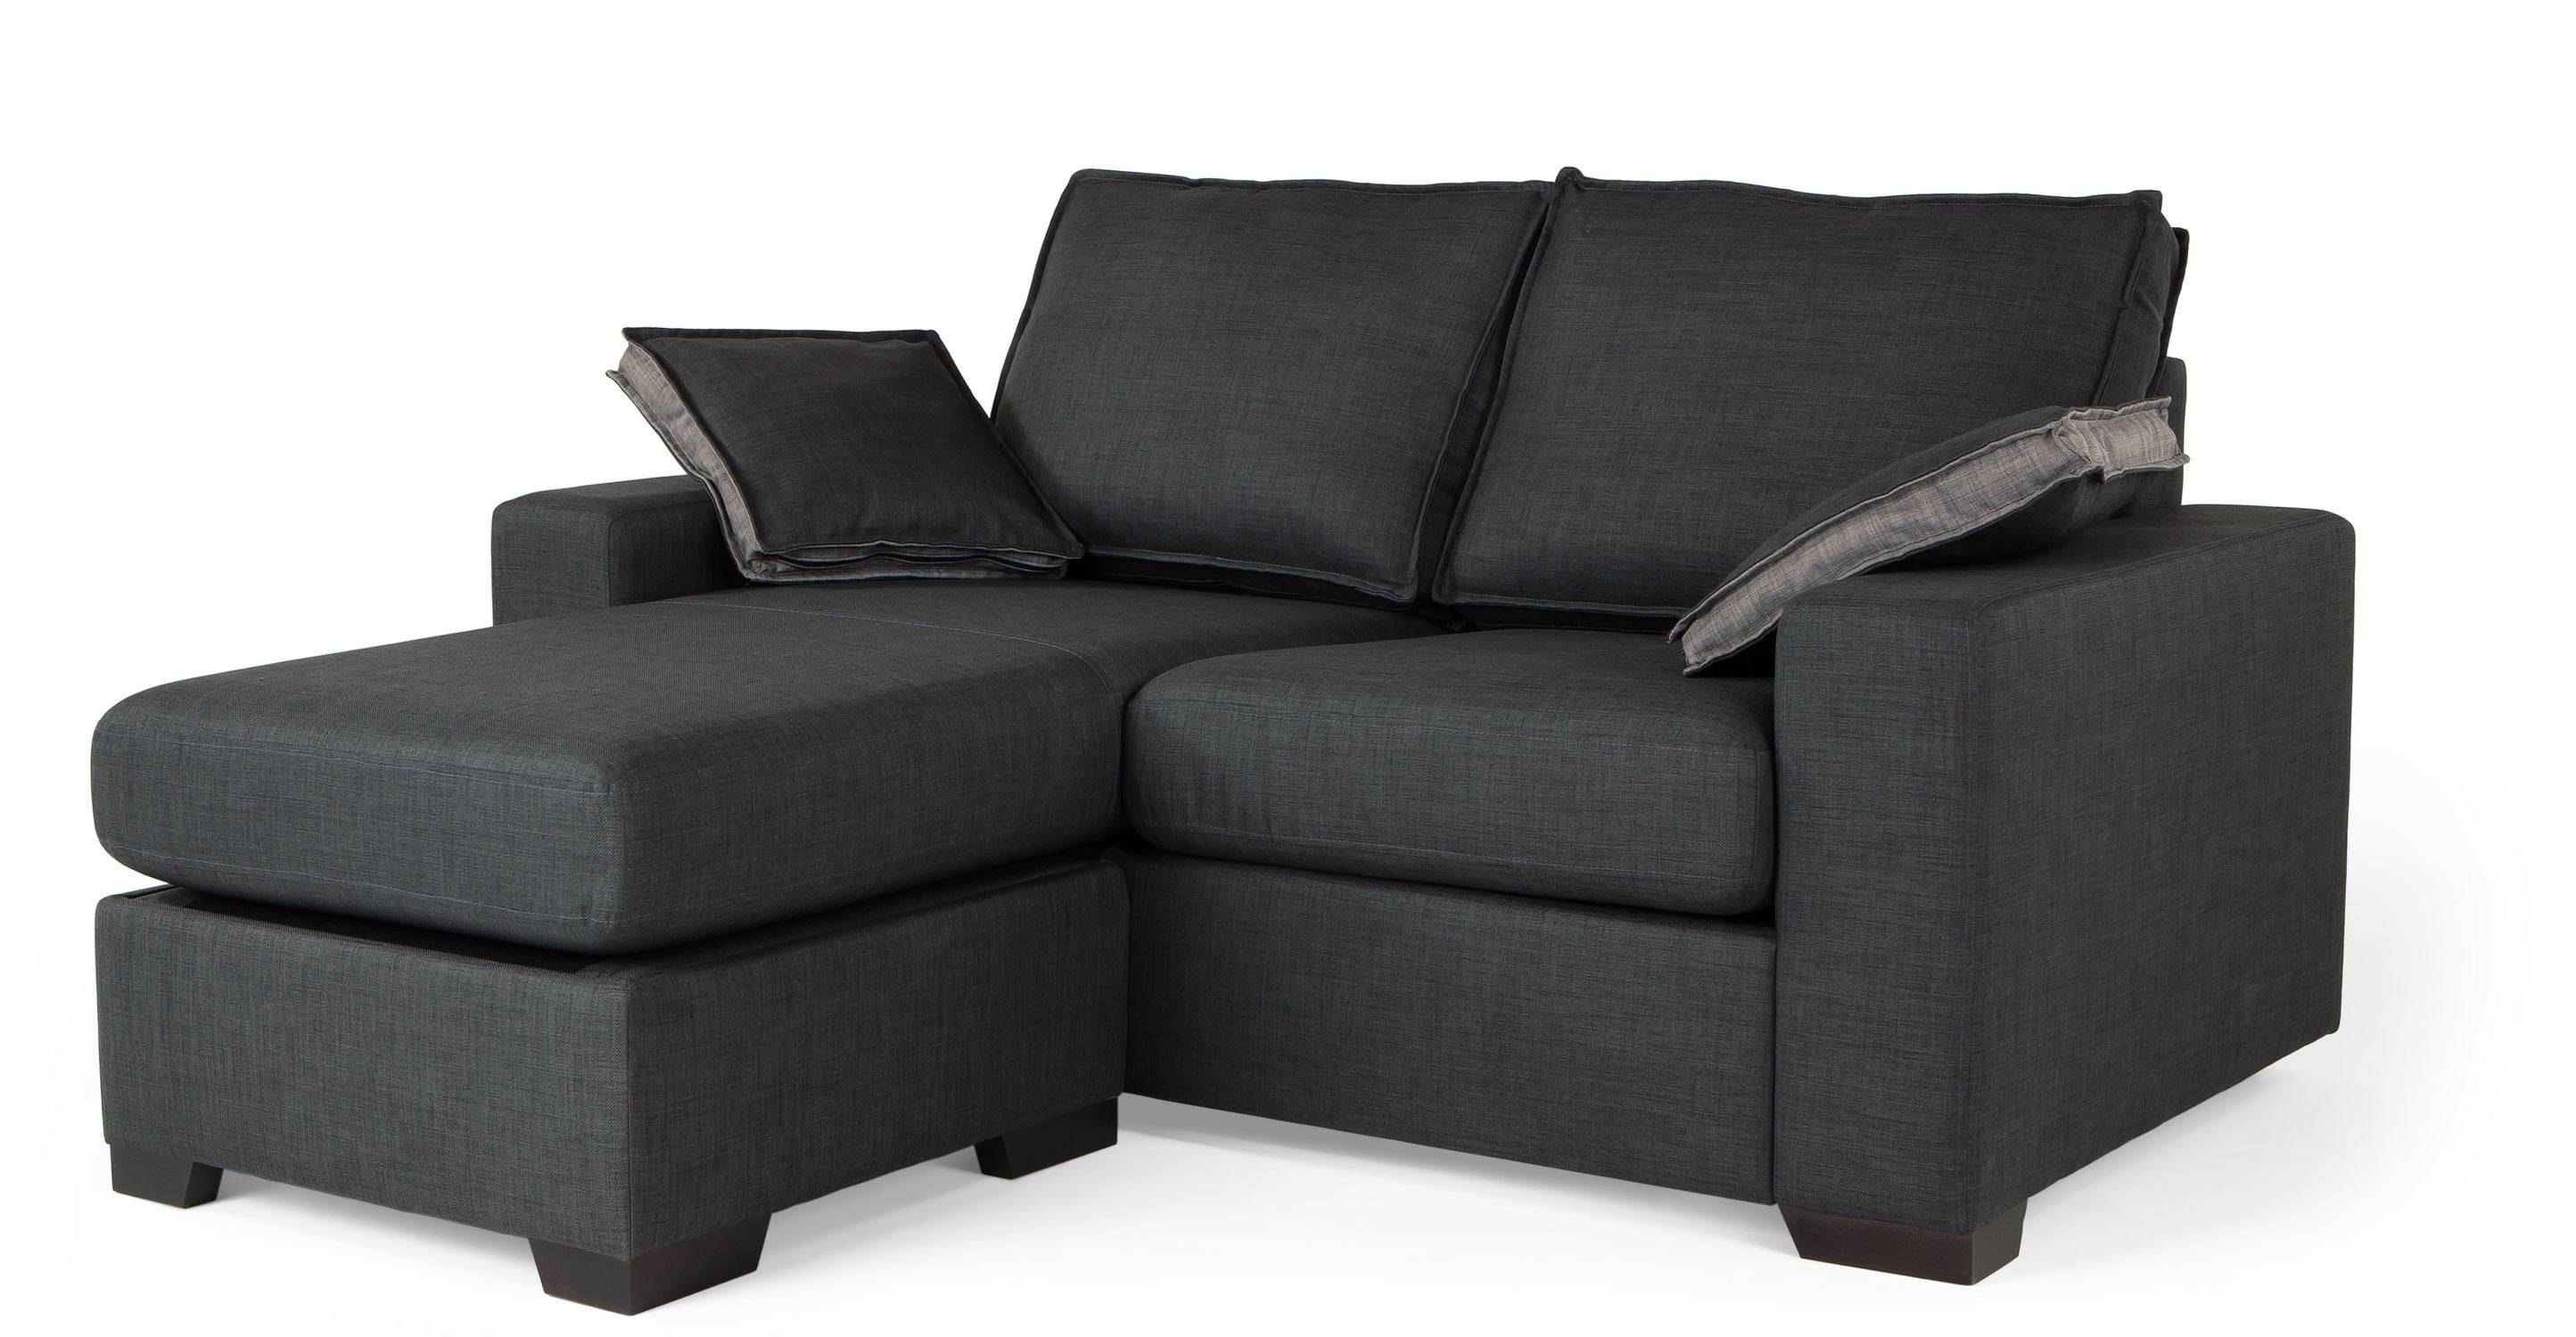 Sofa Beds For Small Apartement | Eva Furniture inside Sofa Beds With Chaise Lounge (Image 11 of 15)